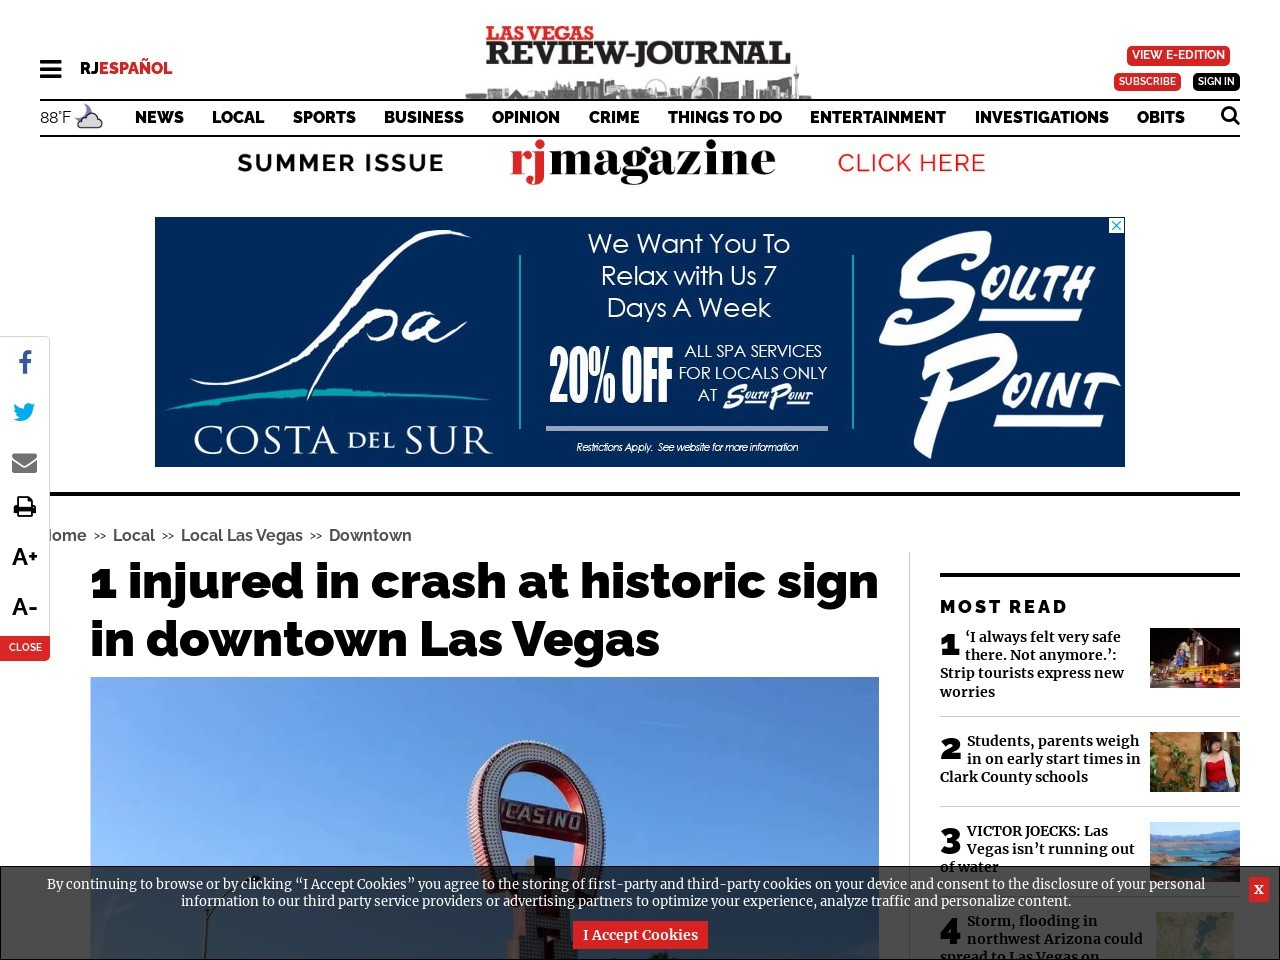 1 injured in crash at historic sign in downtown Las Vegas